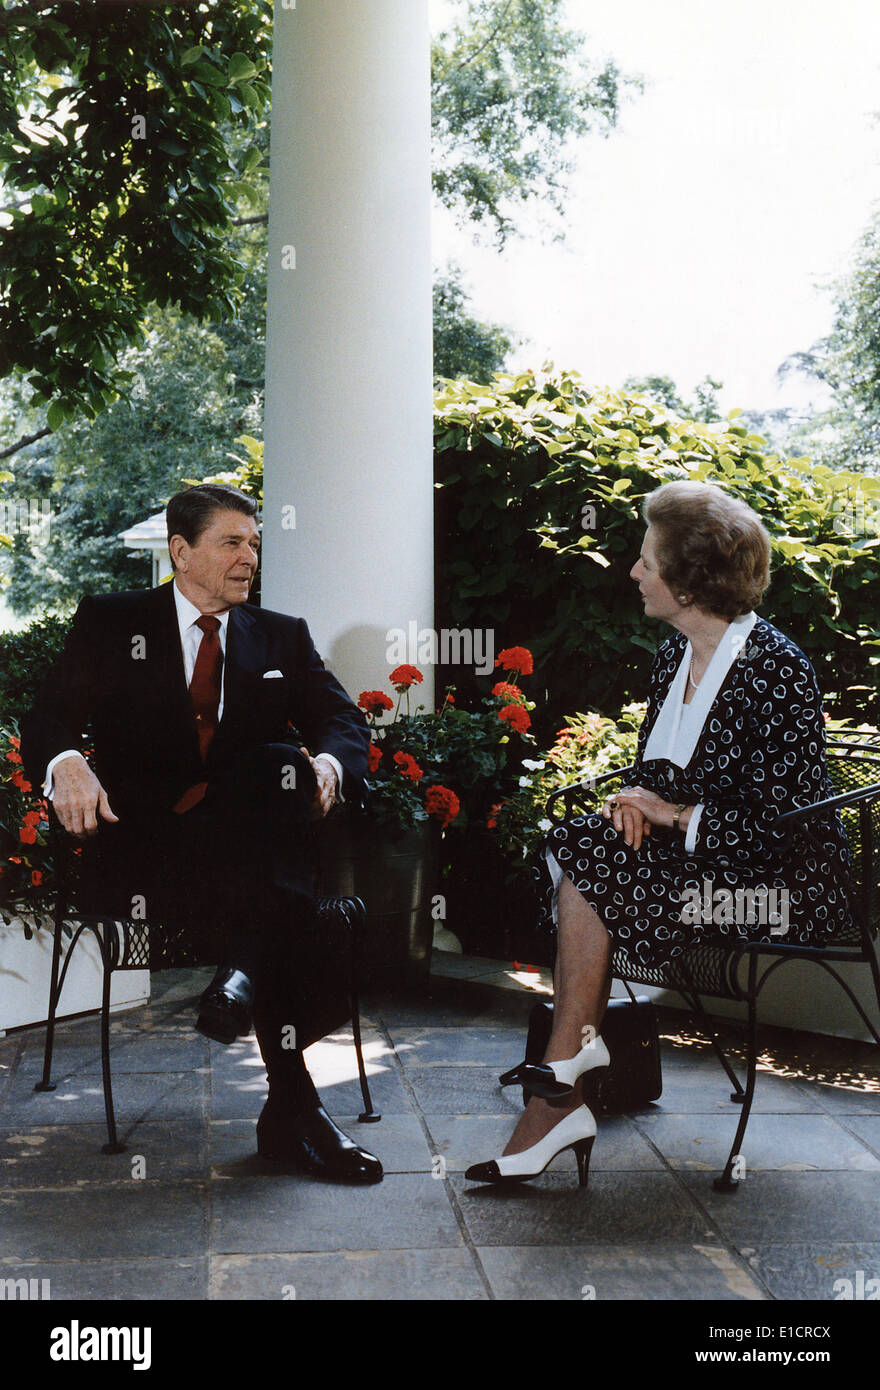 Ronald Reagan. President Reagan and Prime Minister Thatcher talking on the patio outside of the Oval Office. The White House, - Stock Image